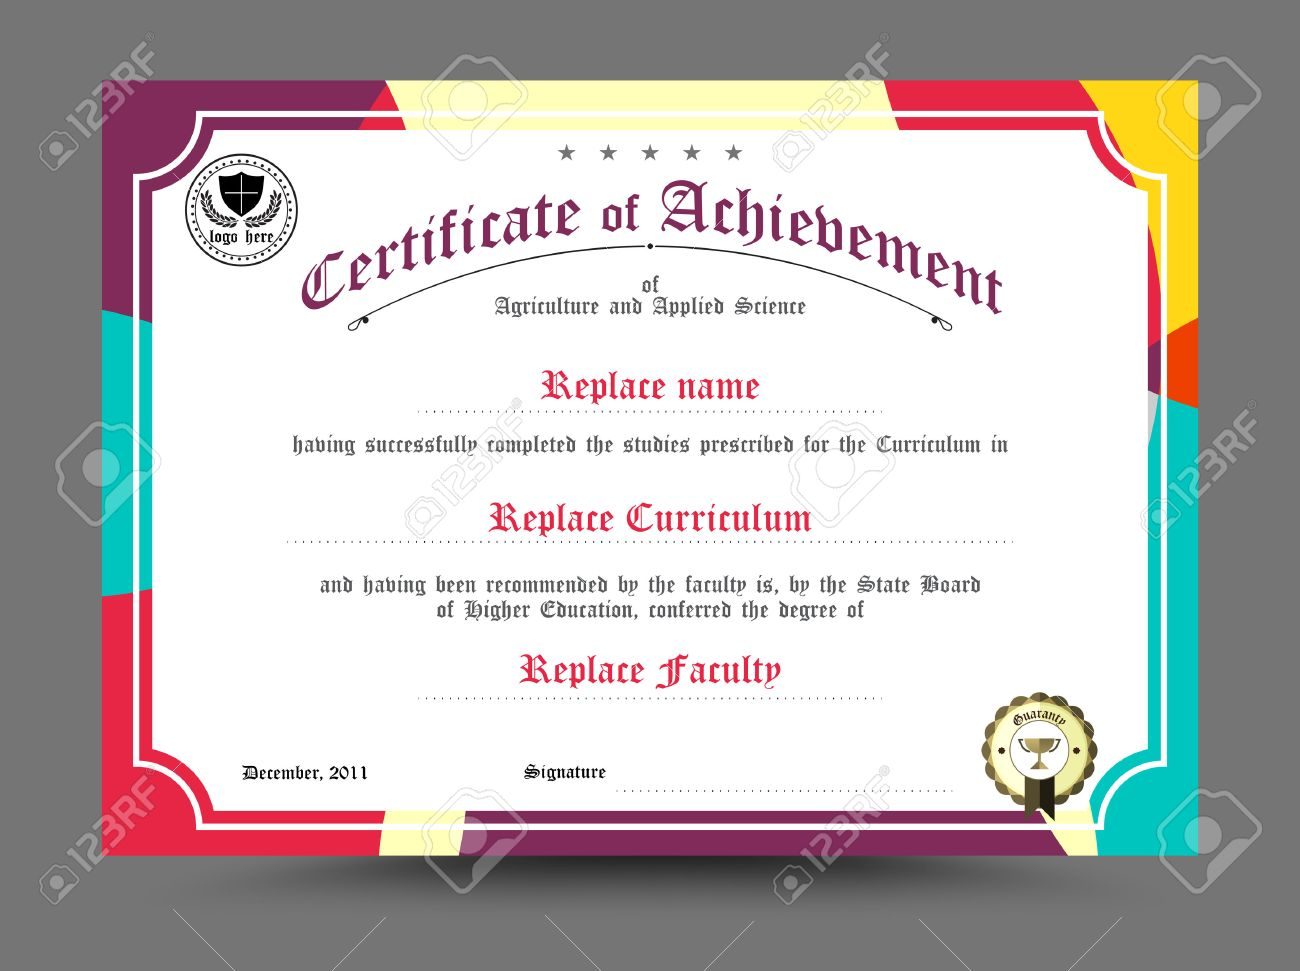 Education certificate templates images templates example free science certificate templates fieldstation science certificate templates alramifo images yadclub Gallery